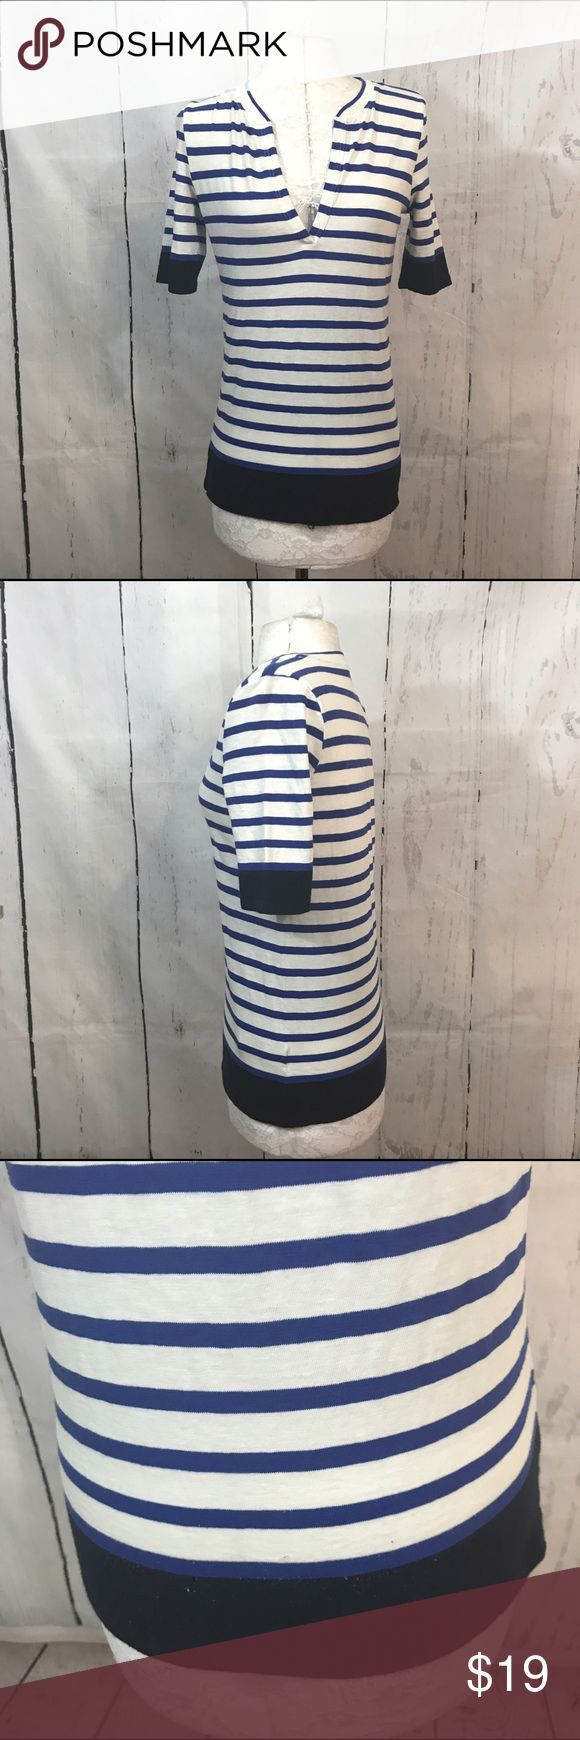 """💛💛 J CREW STRIPED HENLEY TSHIRT B7 Condition: has pilling throughout  Approximate measurements (laying flat): 16.5"""" bust 24"""" Length  Item location: bin 7  ❤no trades/no modeling❤ J. Crew Tops Tees - Short Sleeve"""